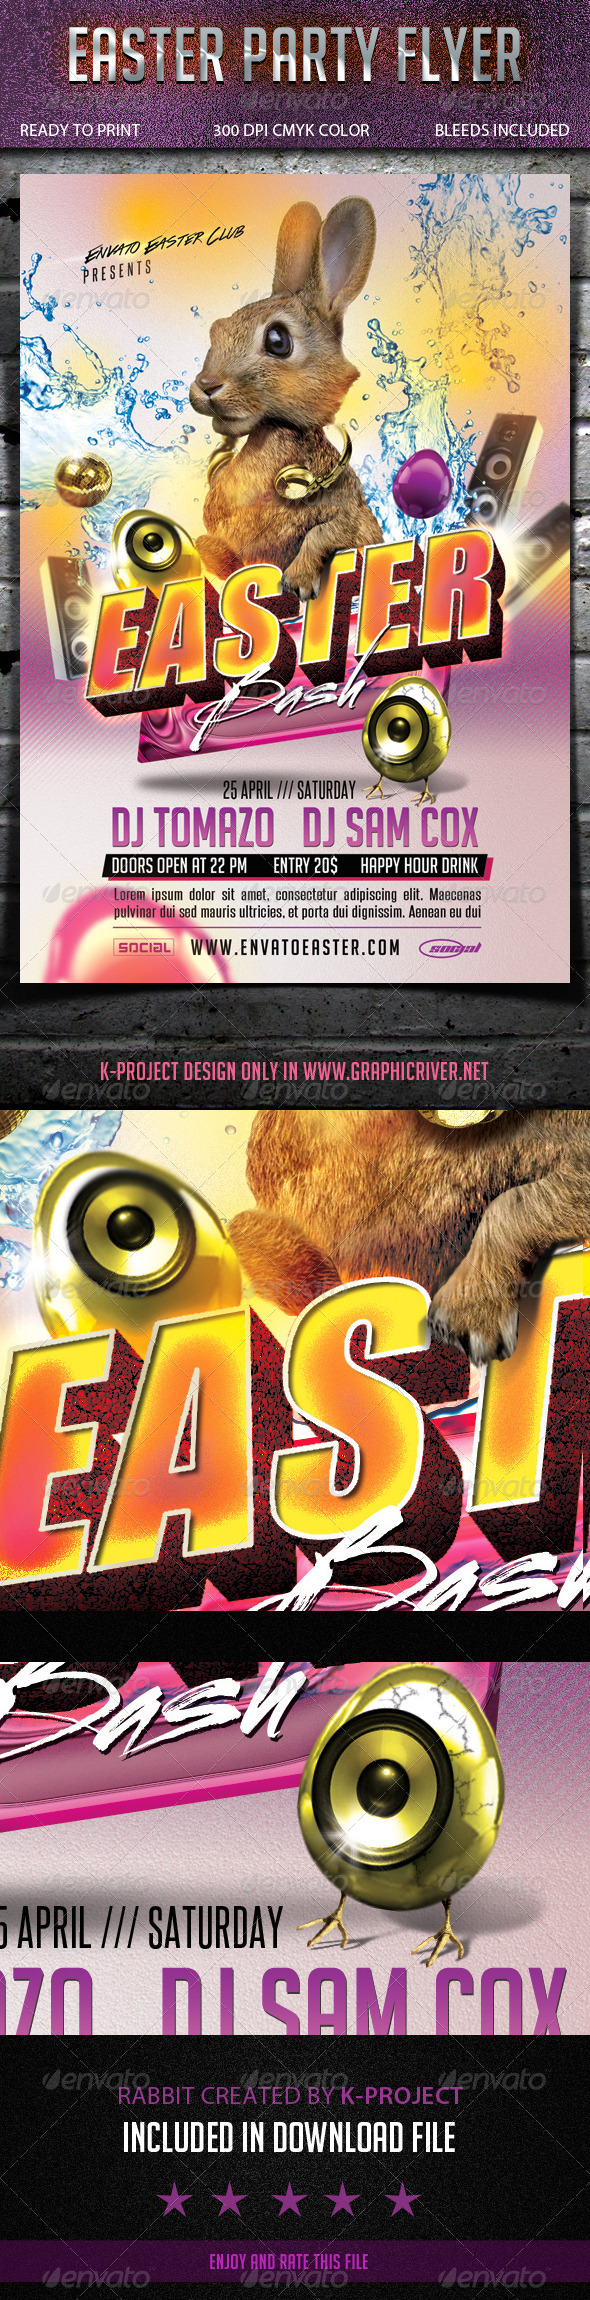 GraphicRiver Easter Party Flyer 7024916